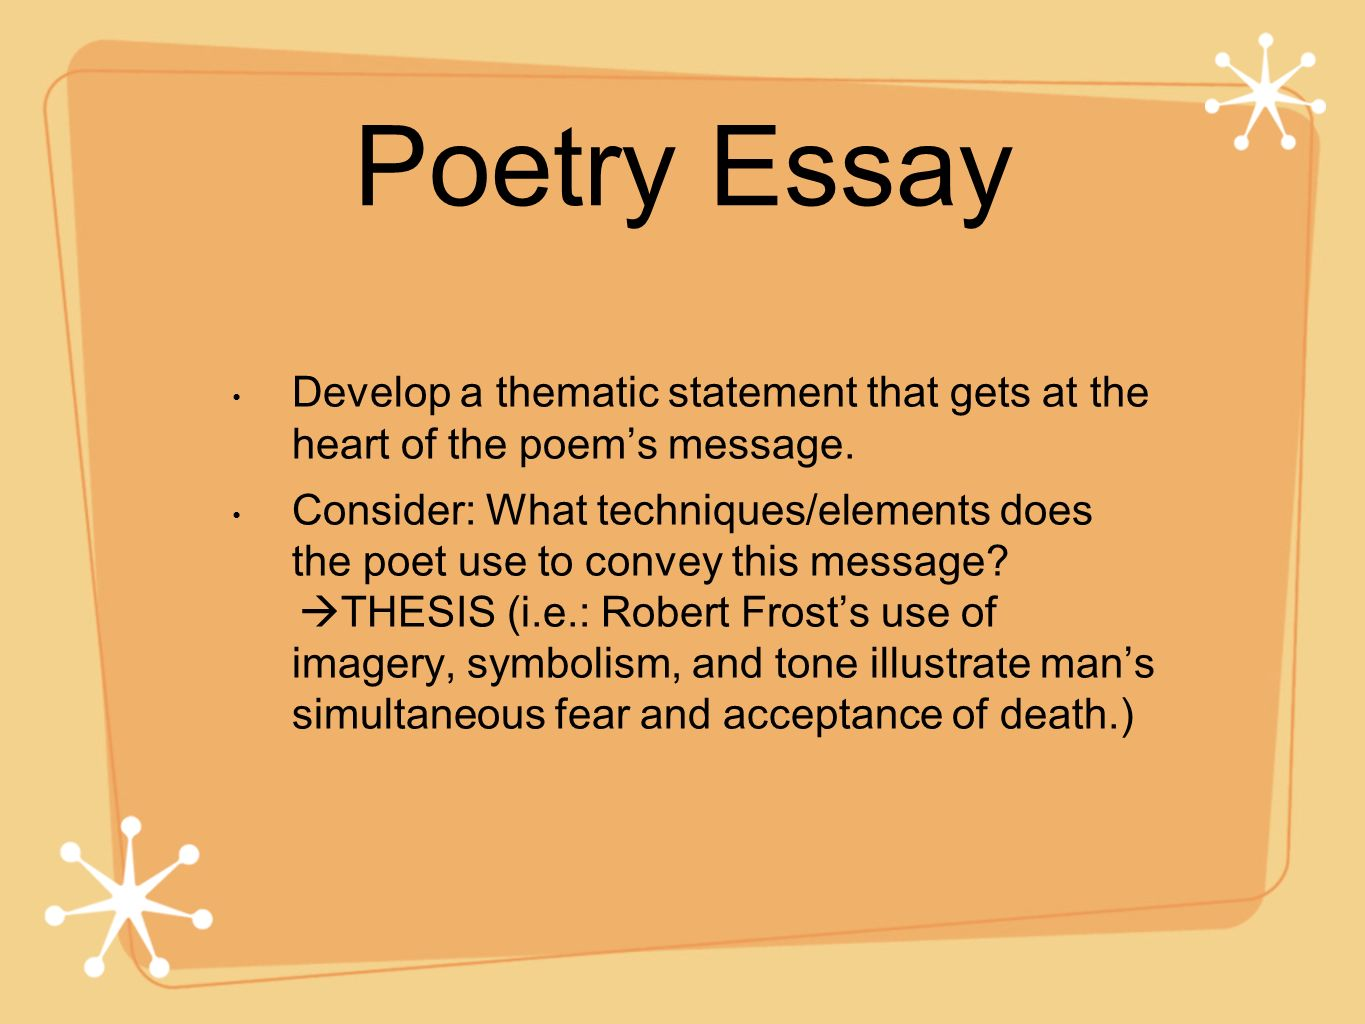 literary analysis essay on poems Start studying essay exam, literary analysis and poetry analysis exam learn vocabulary, terms, and more with flashcards, games, and other study tools.